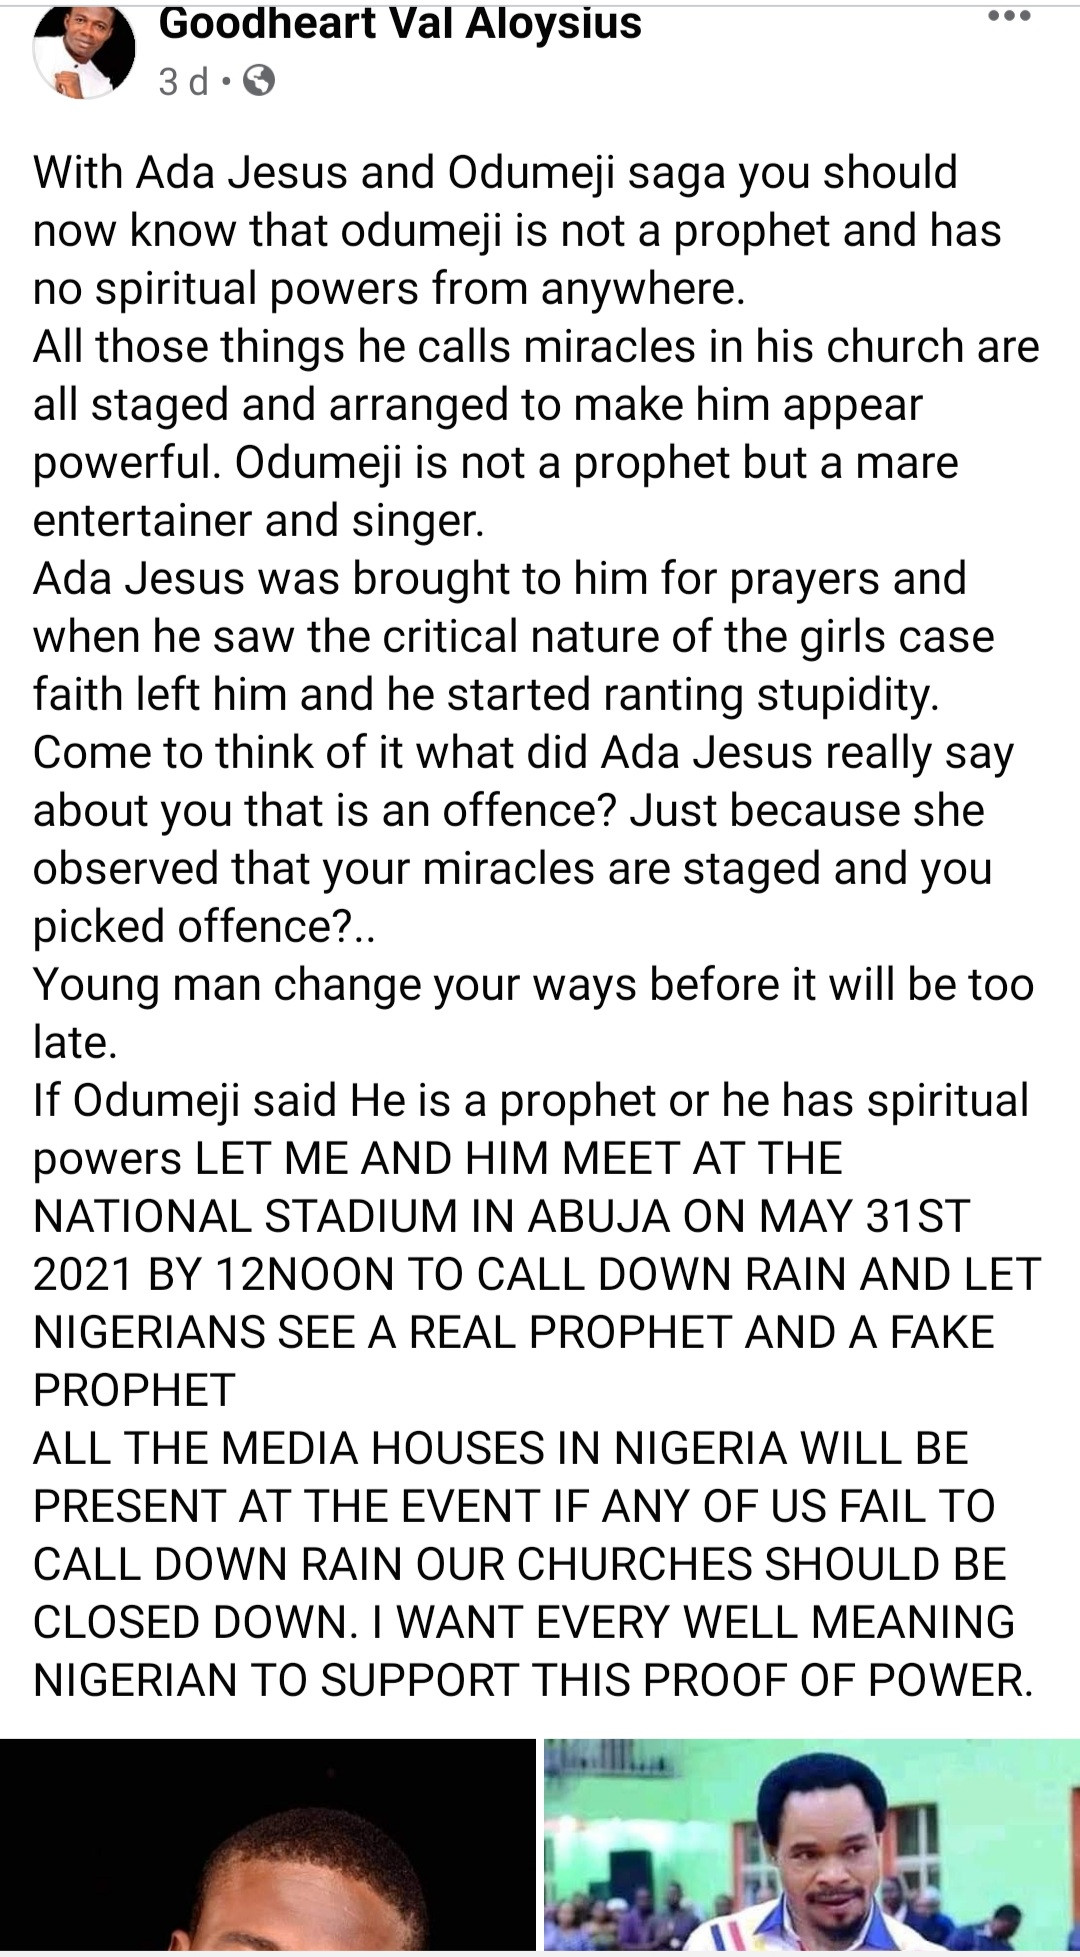 Pastor challenges Prophet Odumejeje to a spiritual battle and invites the public to come and watch